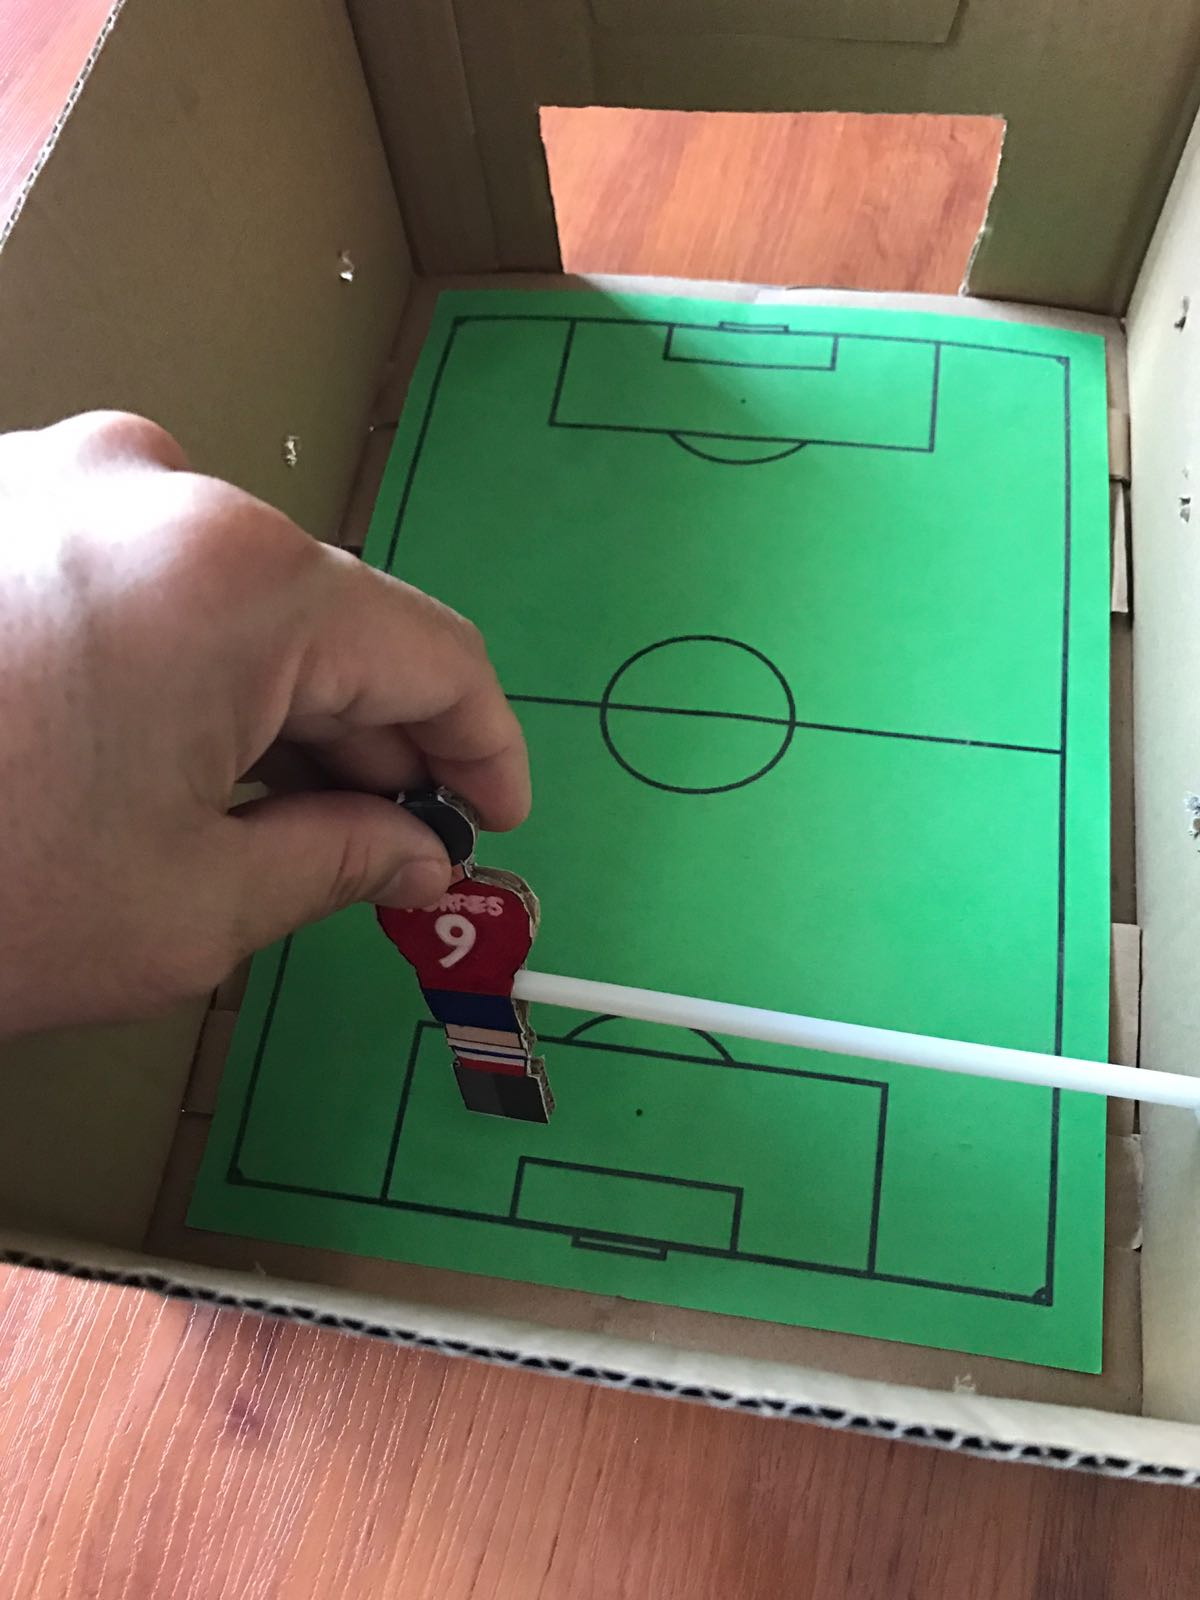 how to make foos ball table game